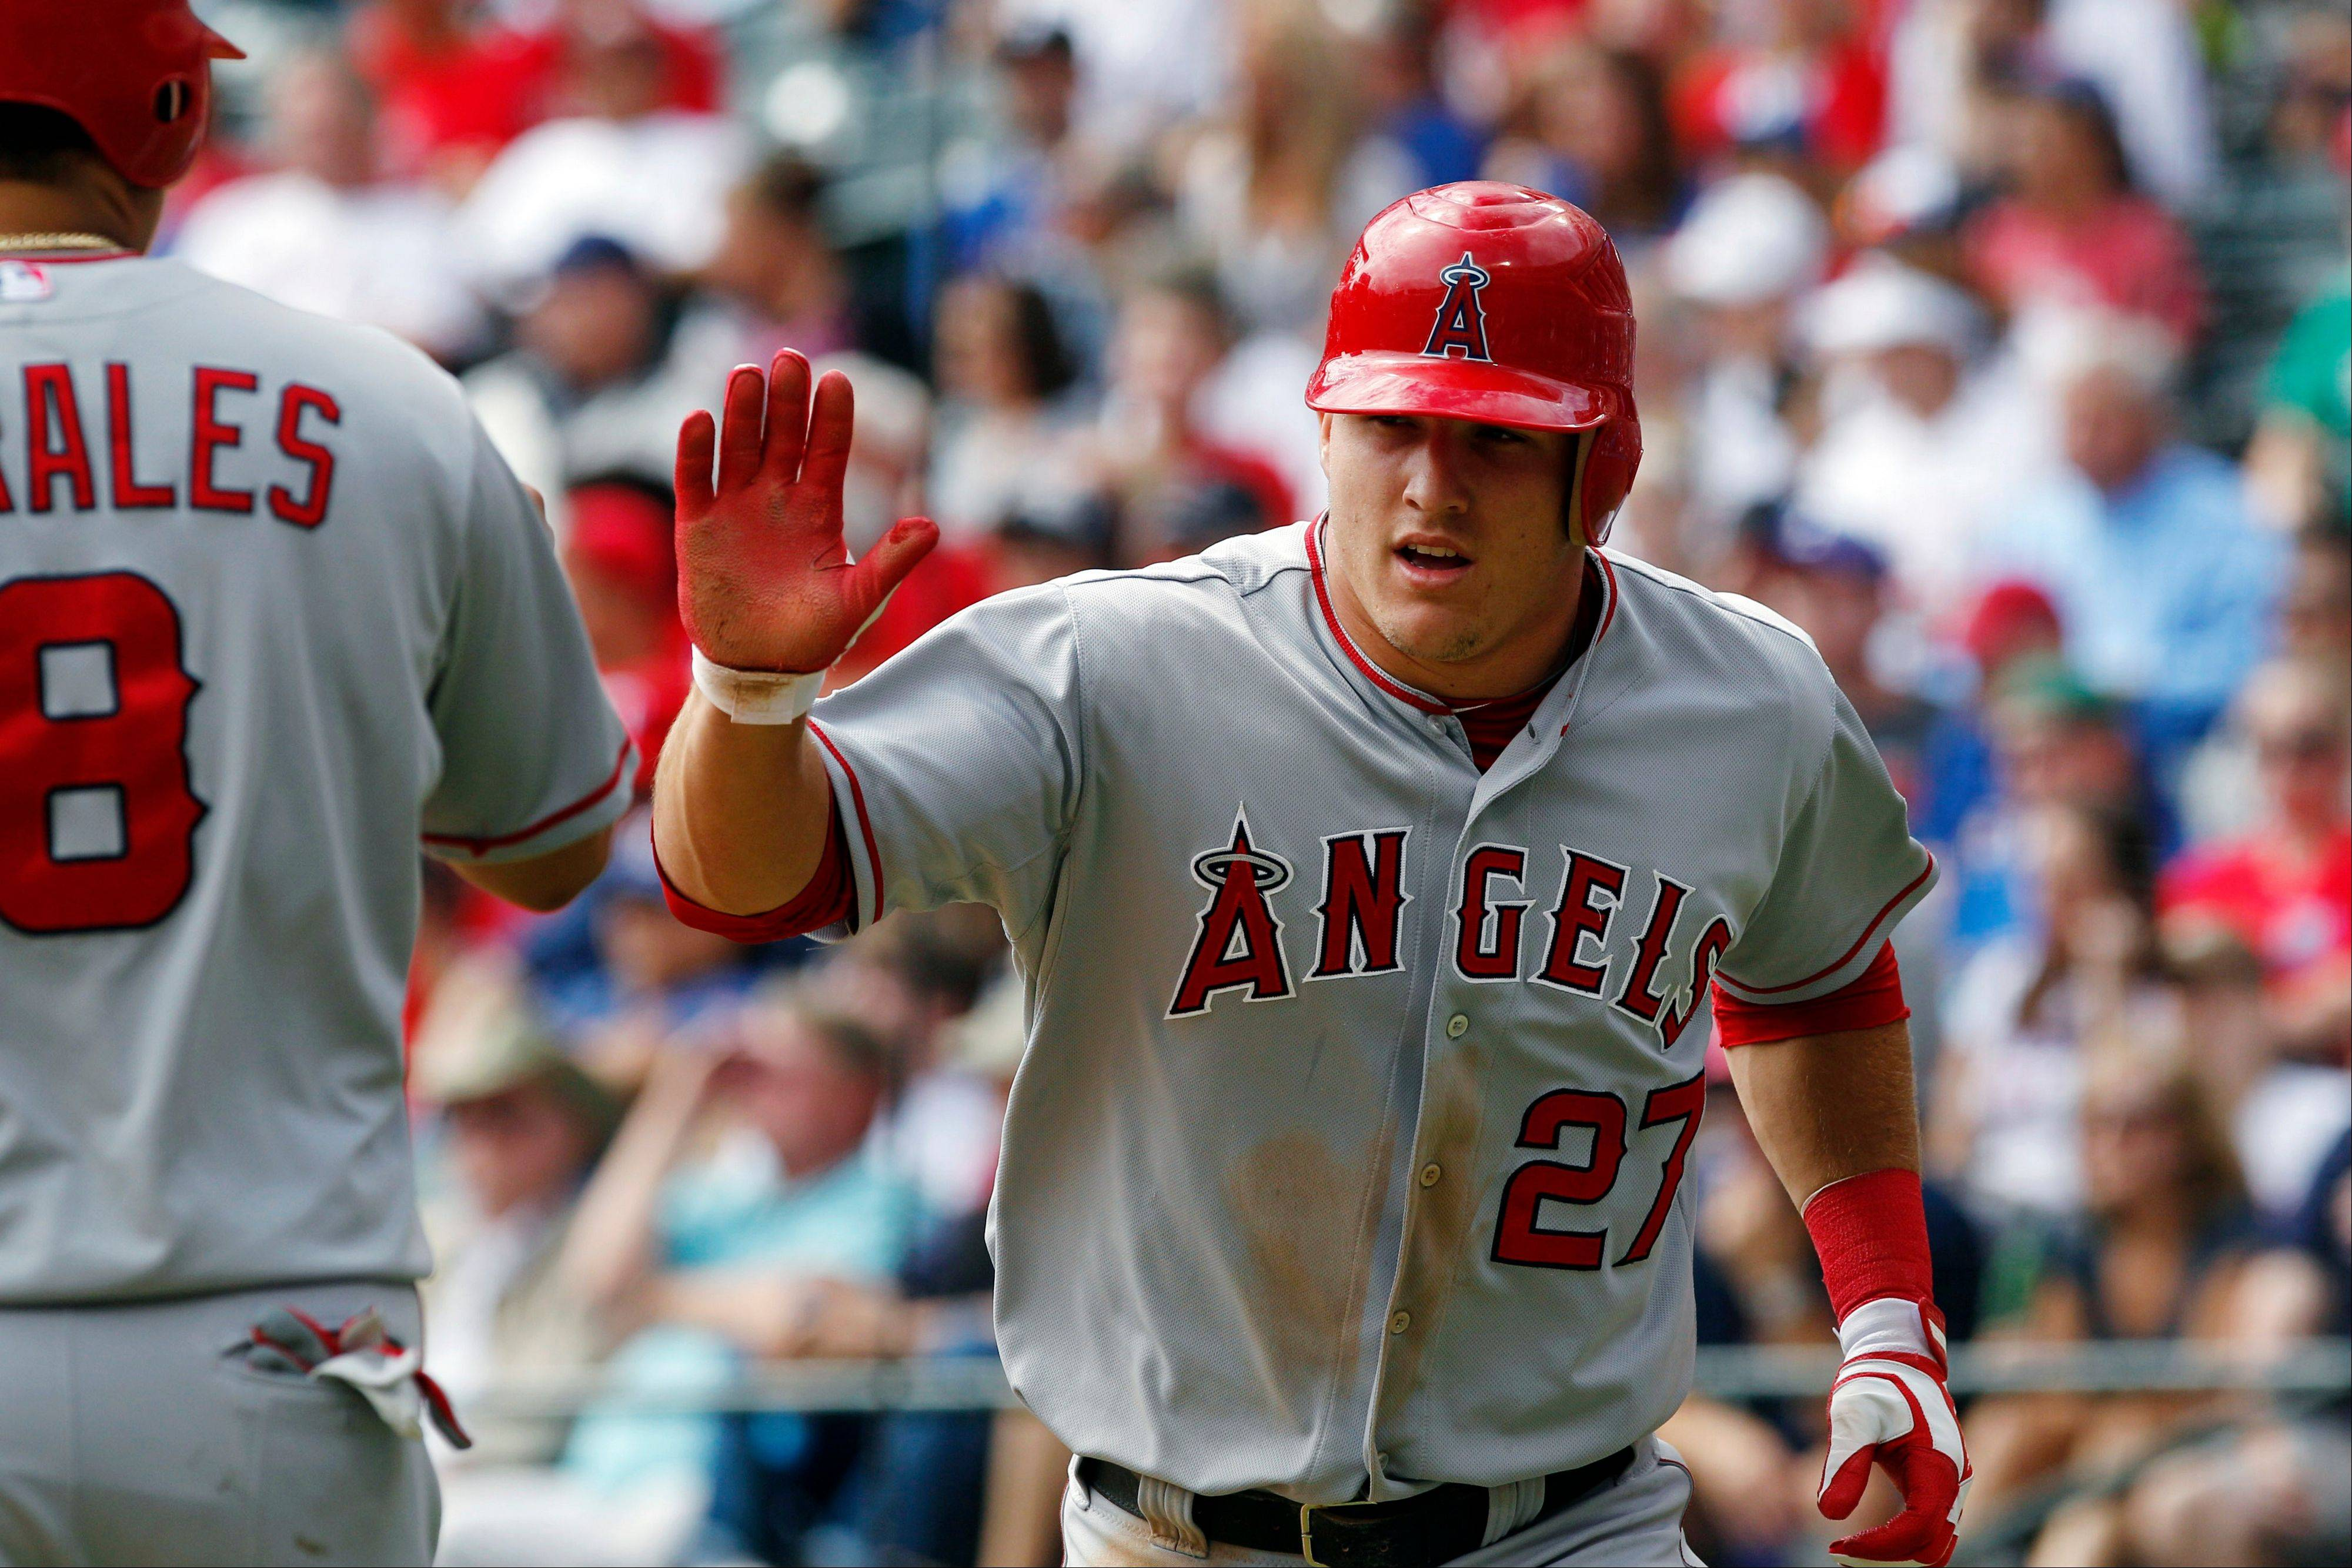 The Angels' Mike Trout may very well beat out the Tigers' Miguel Cabrera for AL MVP.